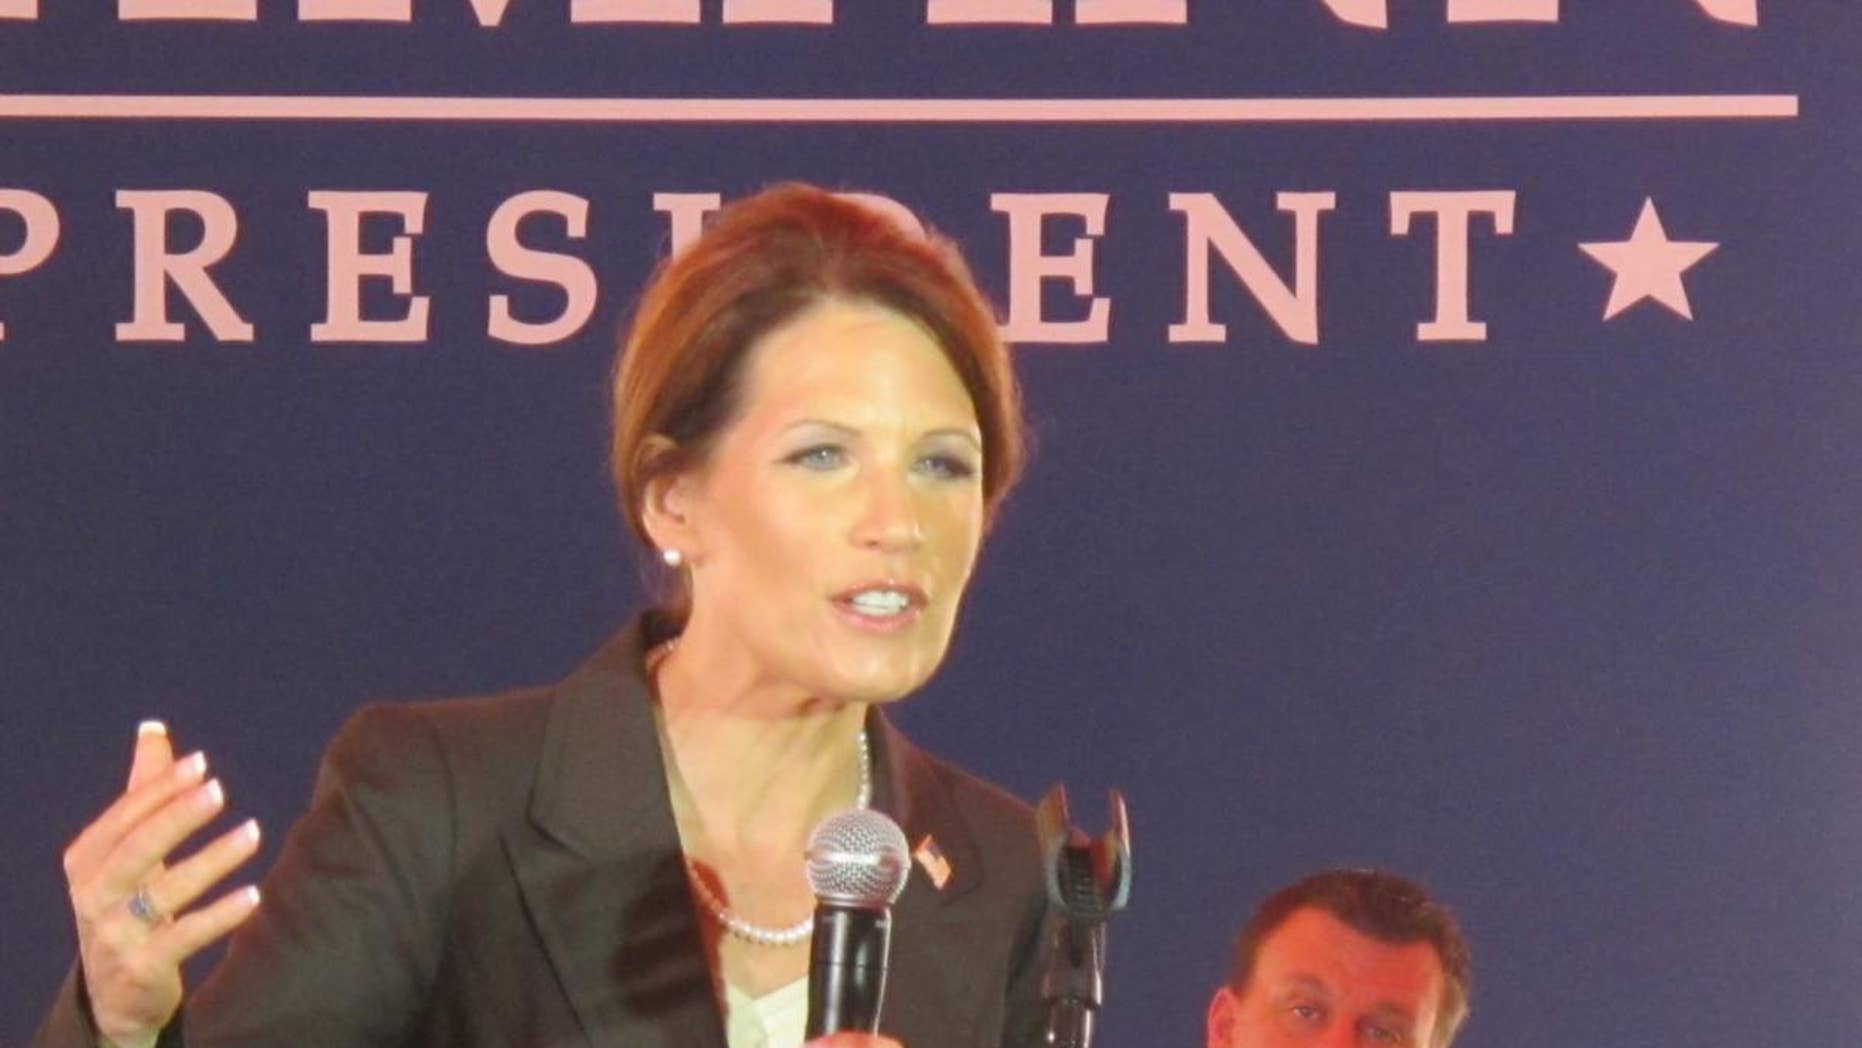 Minnesota Rep. Michele Bachmann speaks at a campaign event in Columbia, SC July 19. (Fox News Photo)